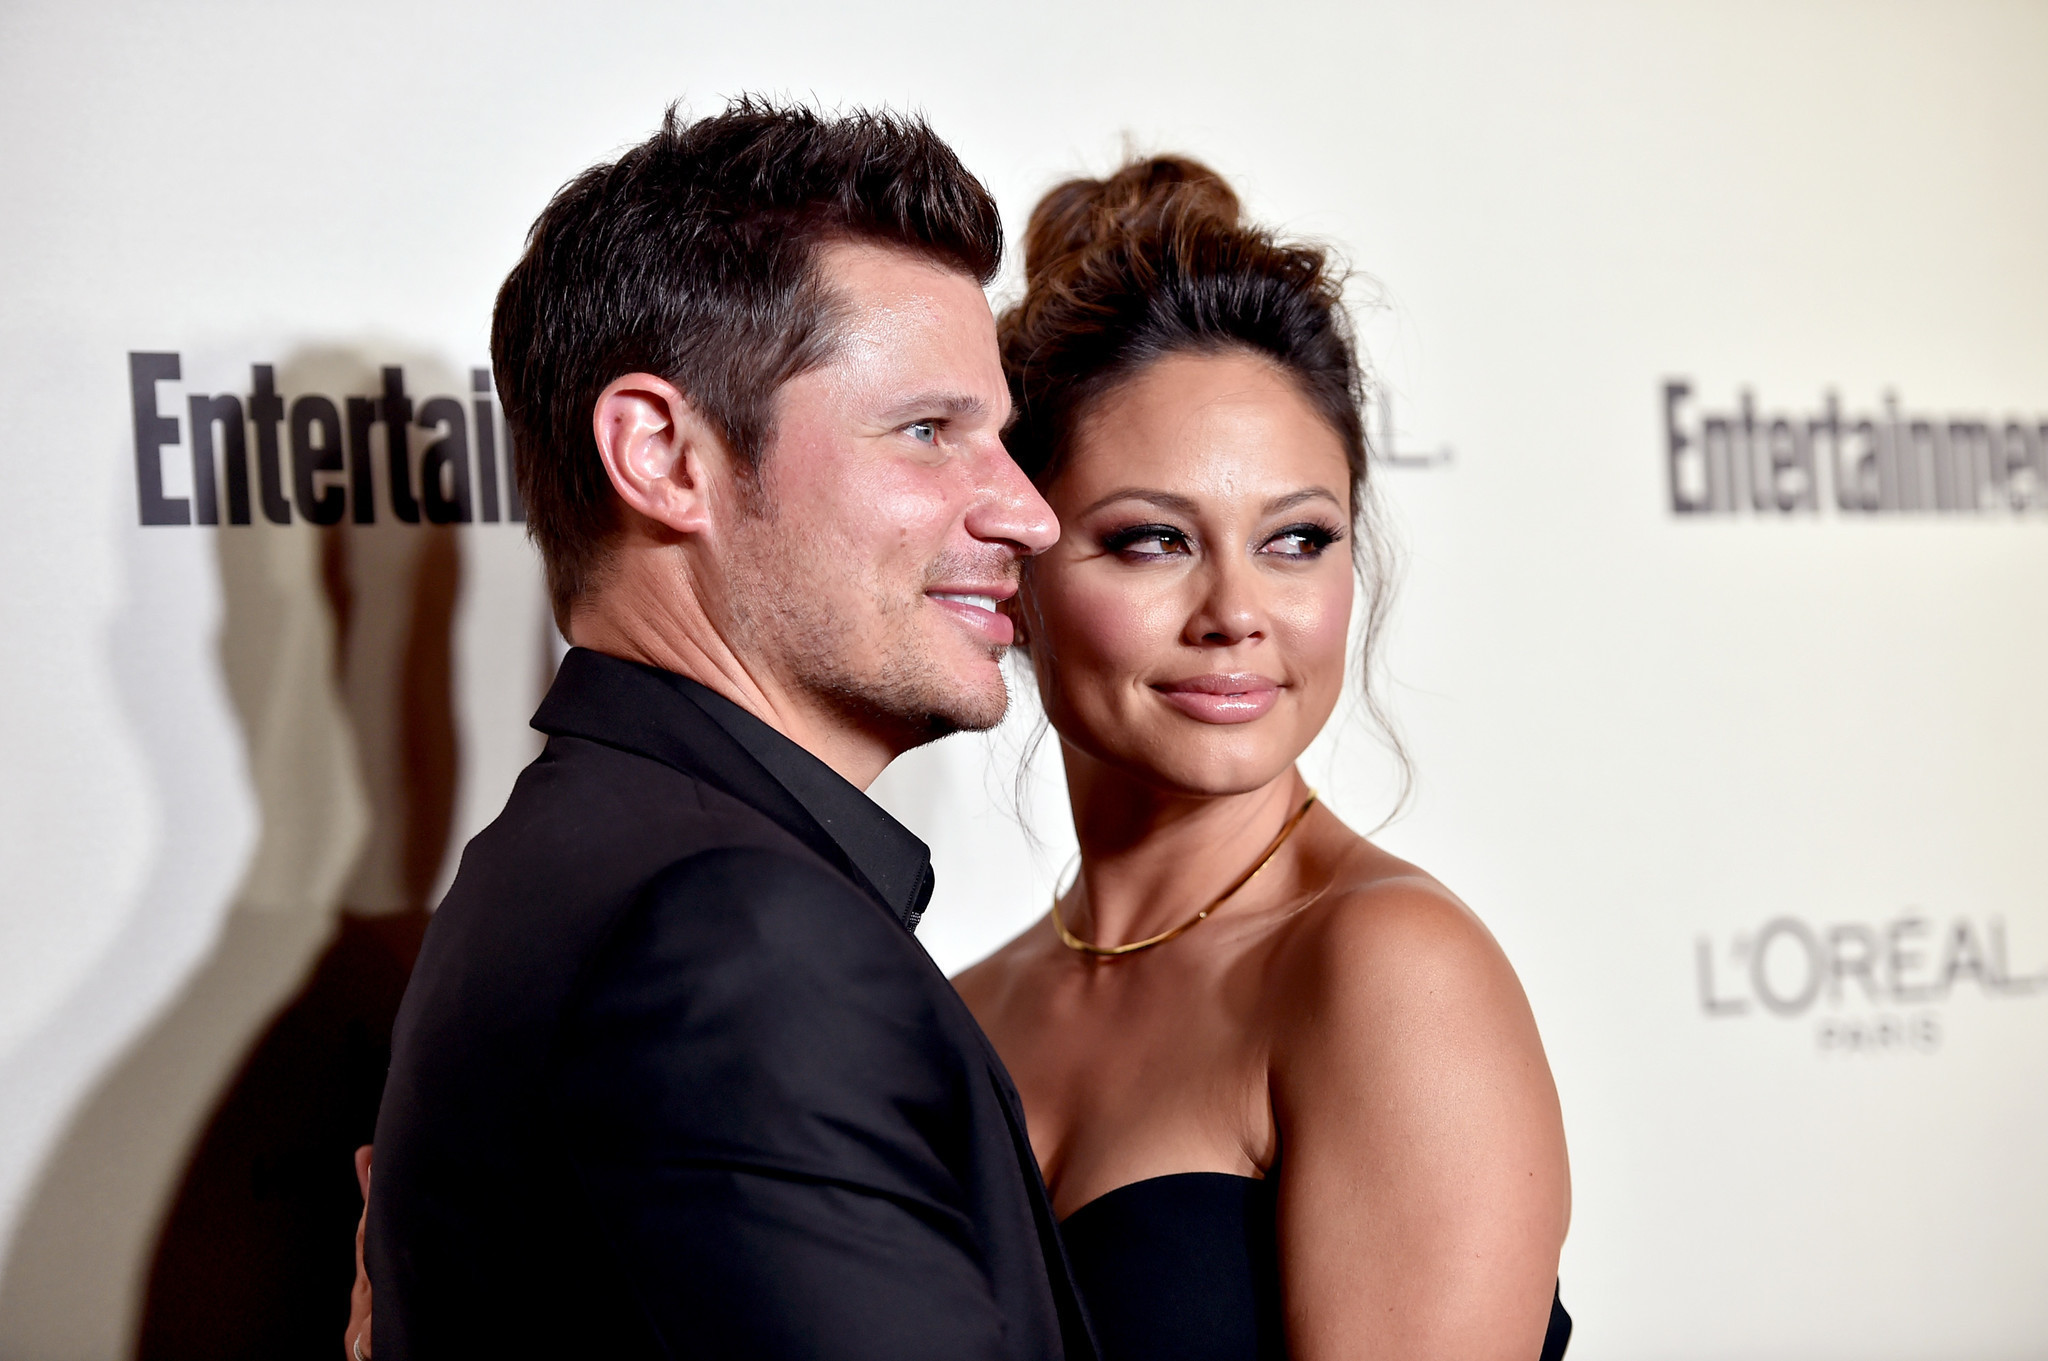 nick lachey and wife vanessa expecting baby no 3 la times